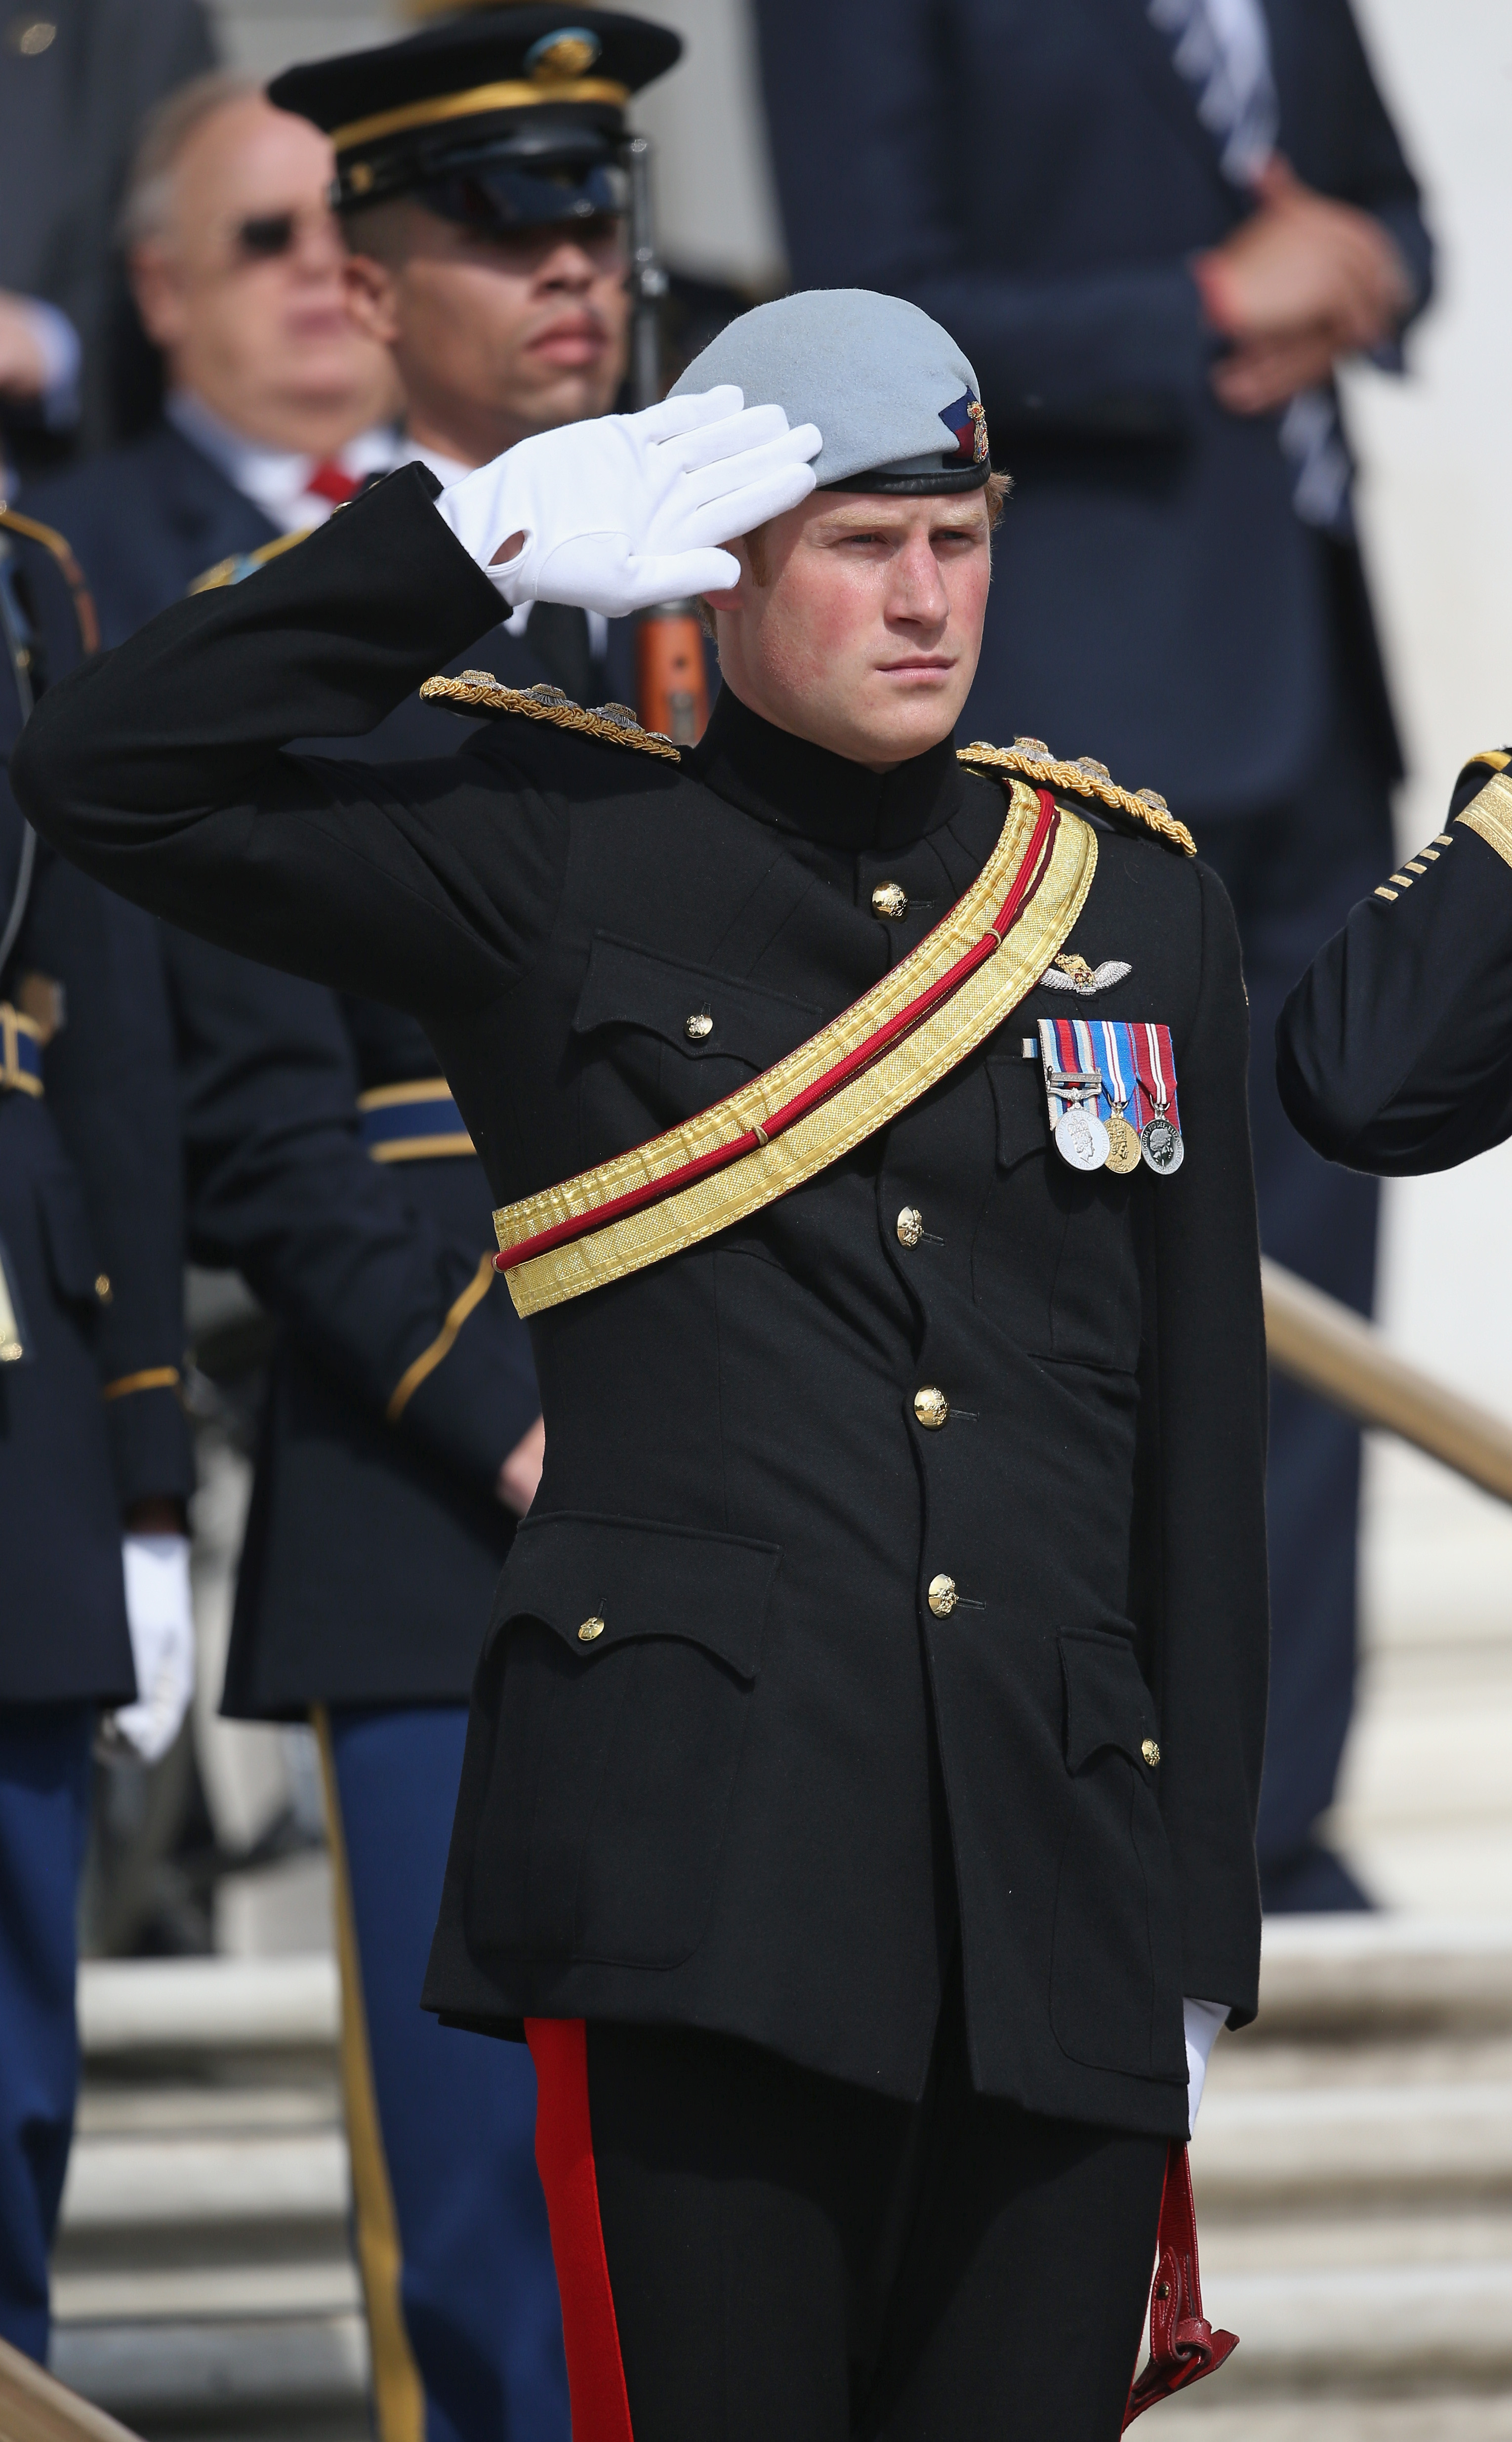 Prince Harry wearing his No. 1 ceremonial uniform of The Blues and Royals as he pays his respects to the victims of the Afghanistan conflict and the tomb of the unknown soldier during the second day of his visit to the United States. (Photo by Chris Jackson/Getty Images)